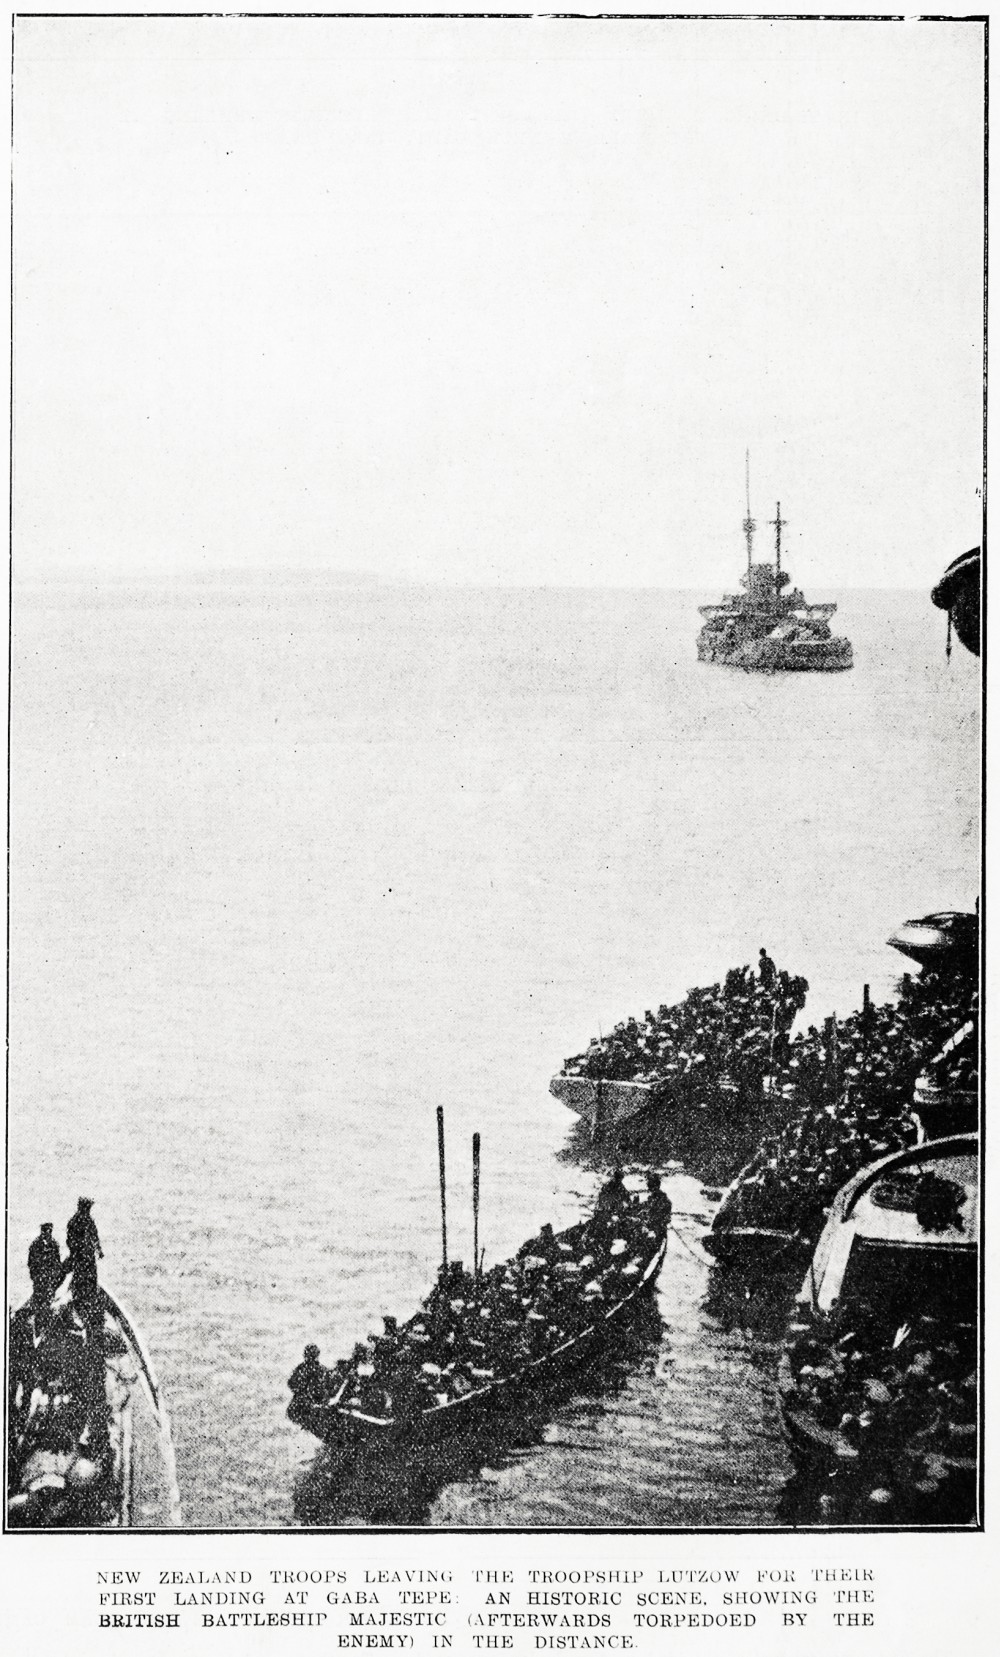 New Zealand troops leaving the troopship Lutzow for their first landing at Gaba Tepe: an historic scene. Showing the British battleship Majestic (afterwards torpedoed by the enemy) in the distance. - Auckland Libraries